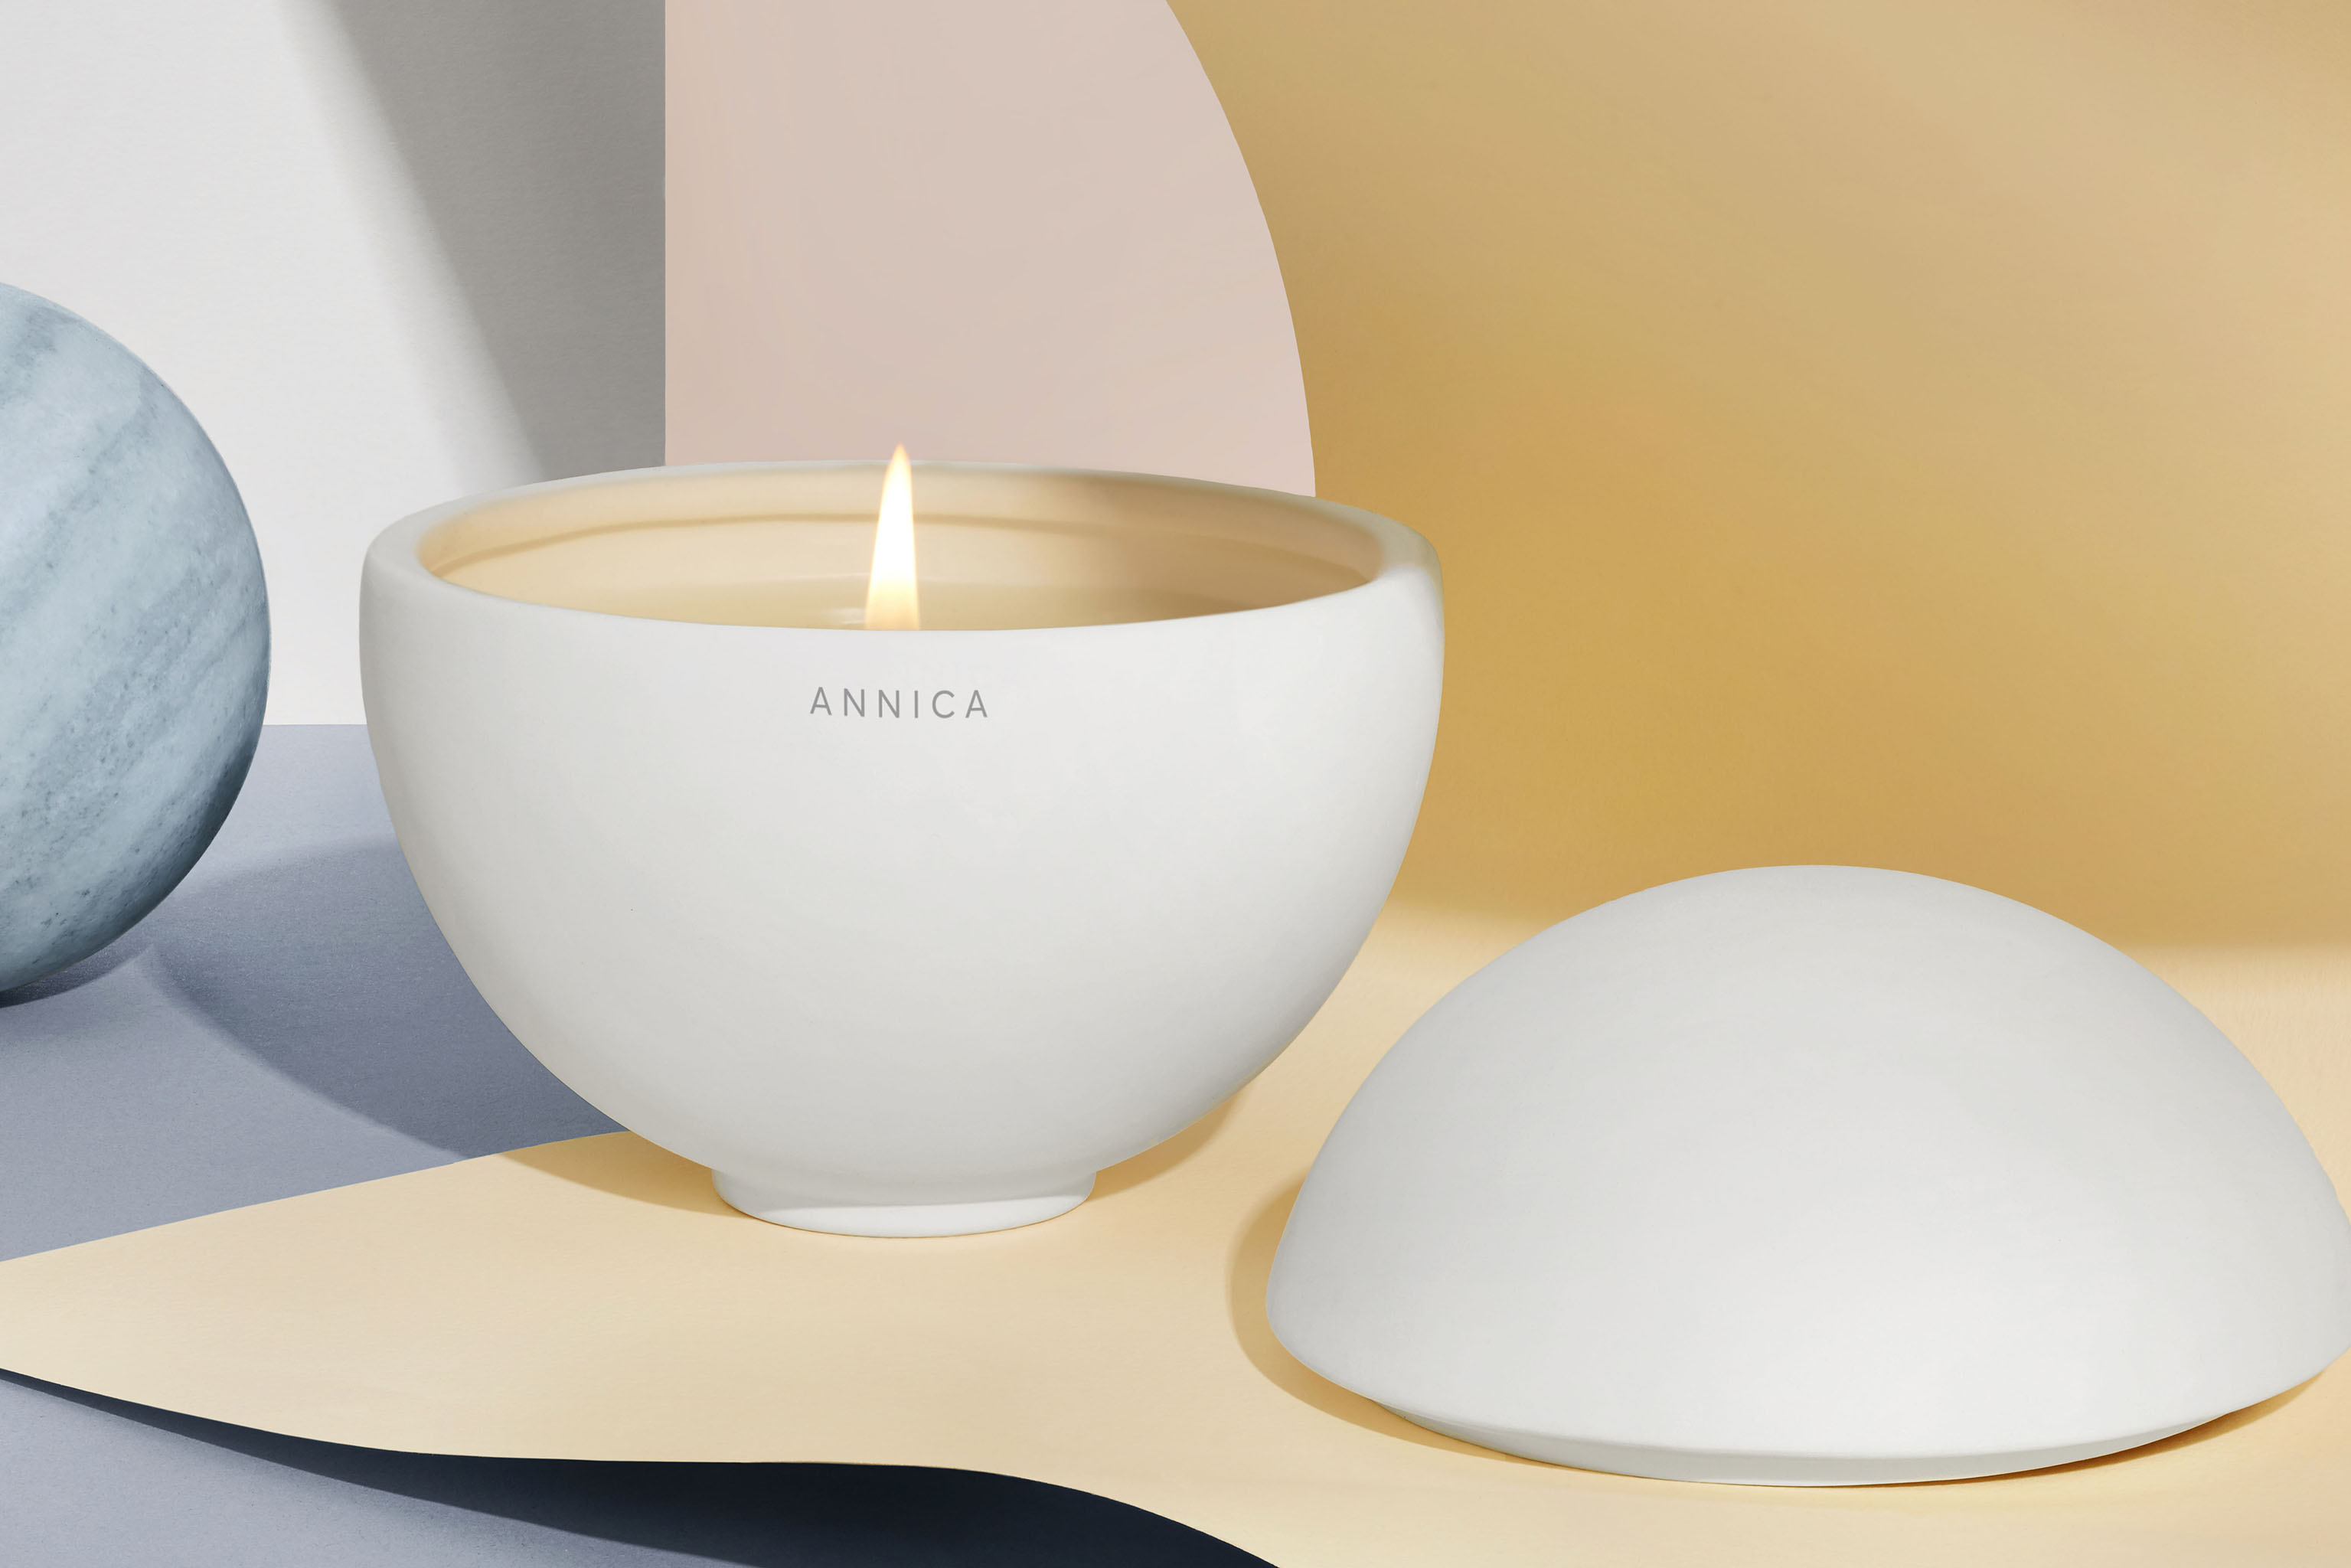 Phlur's Annica candle.